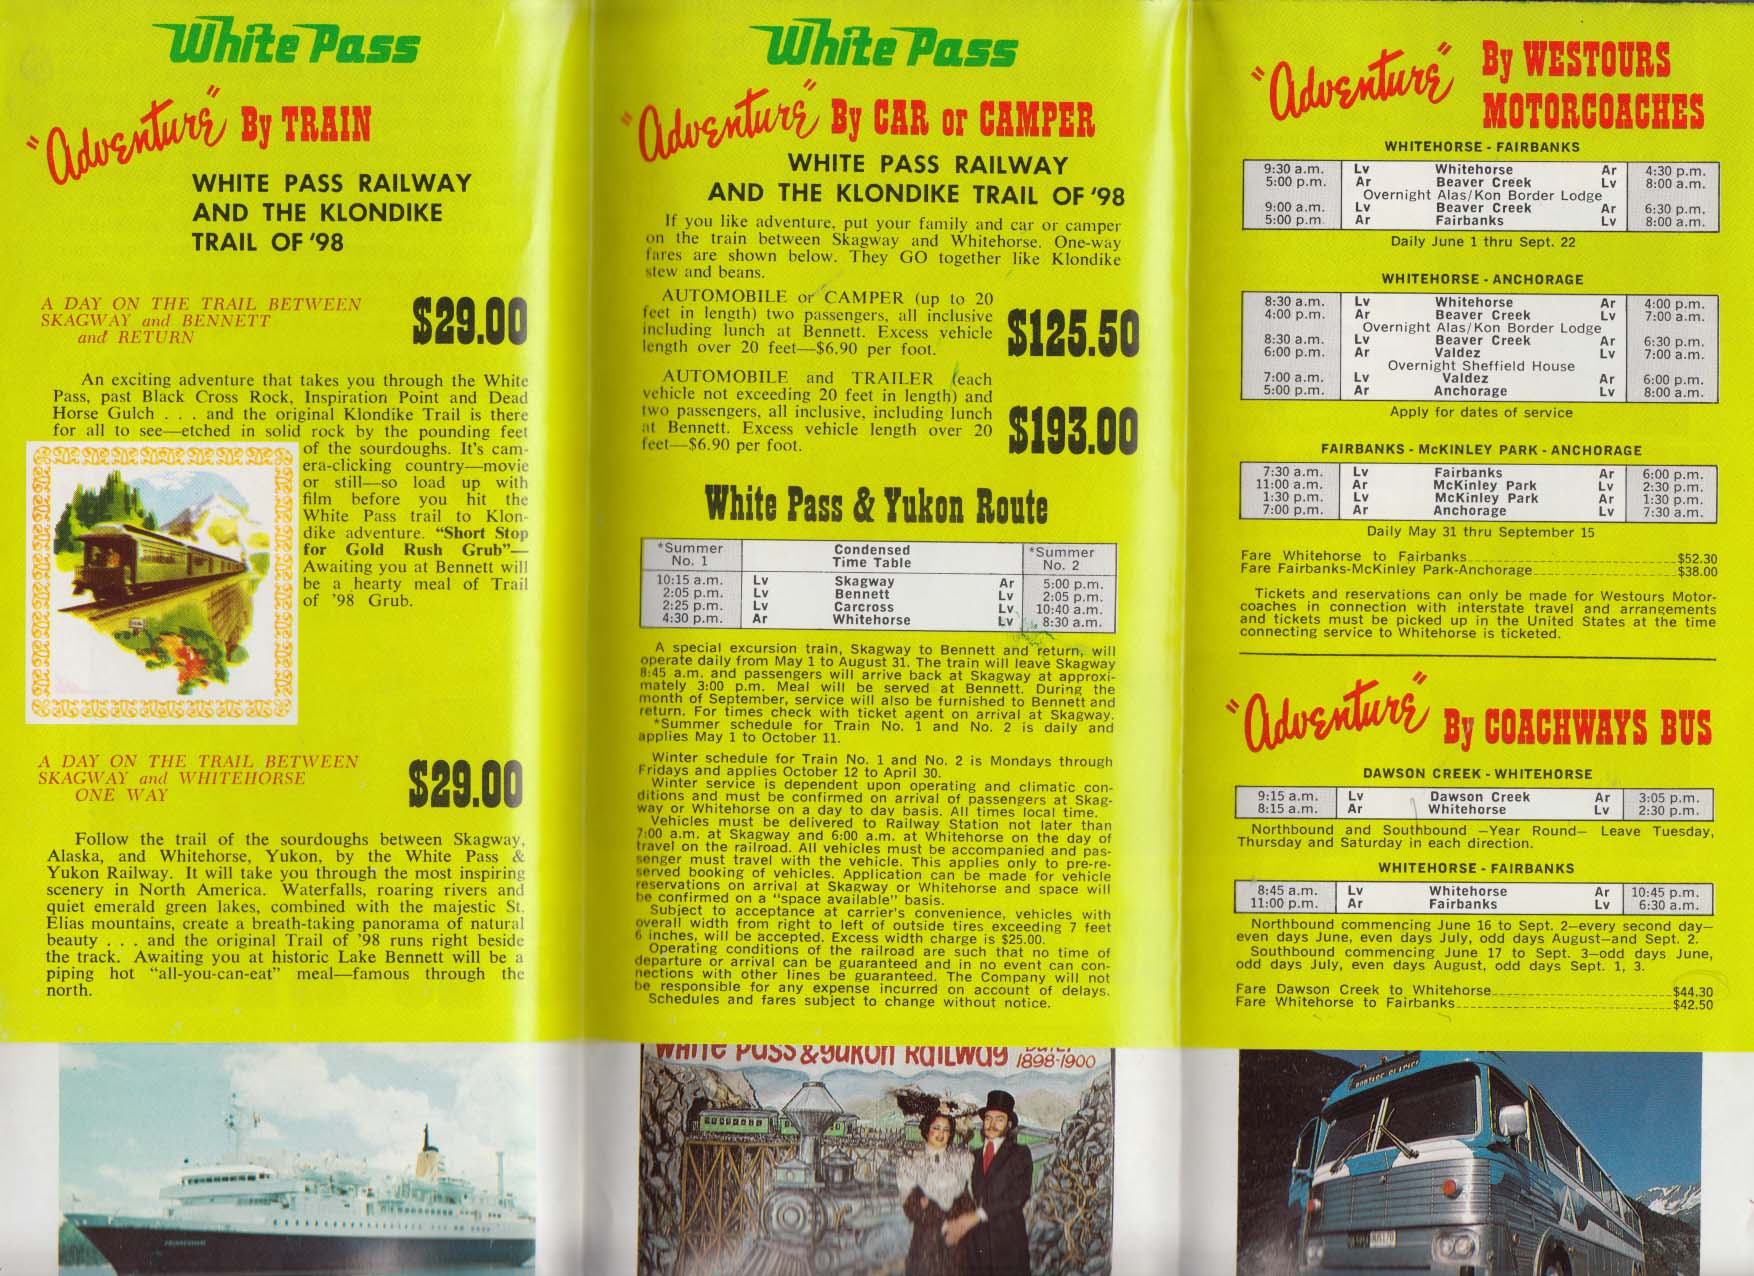 White Pass & Yukon Railroad Alaska & the Yukon schedule 1975